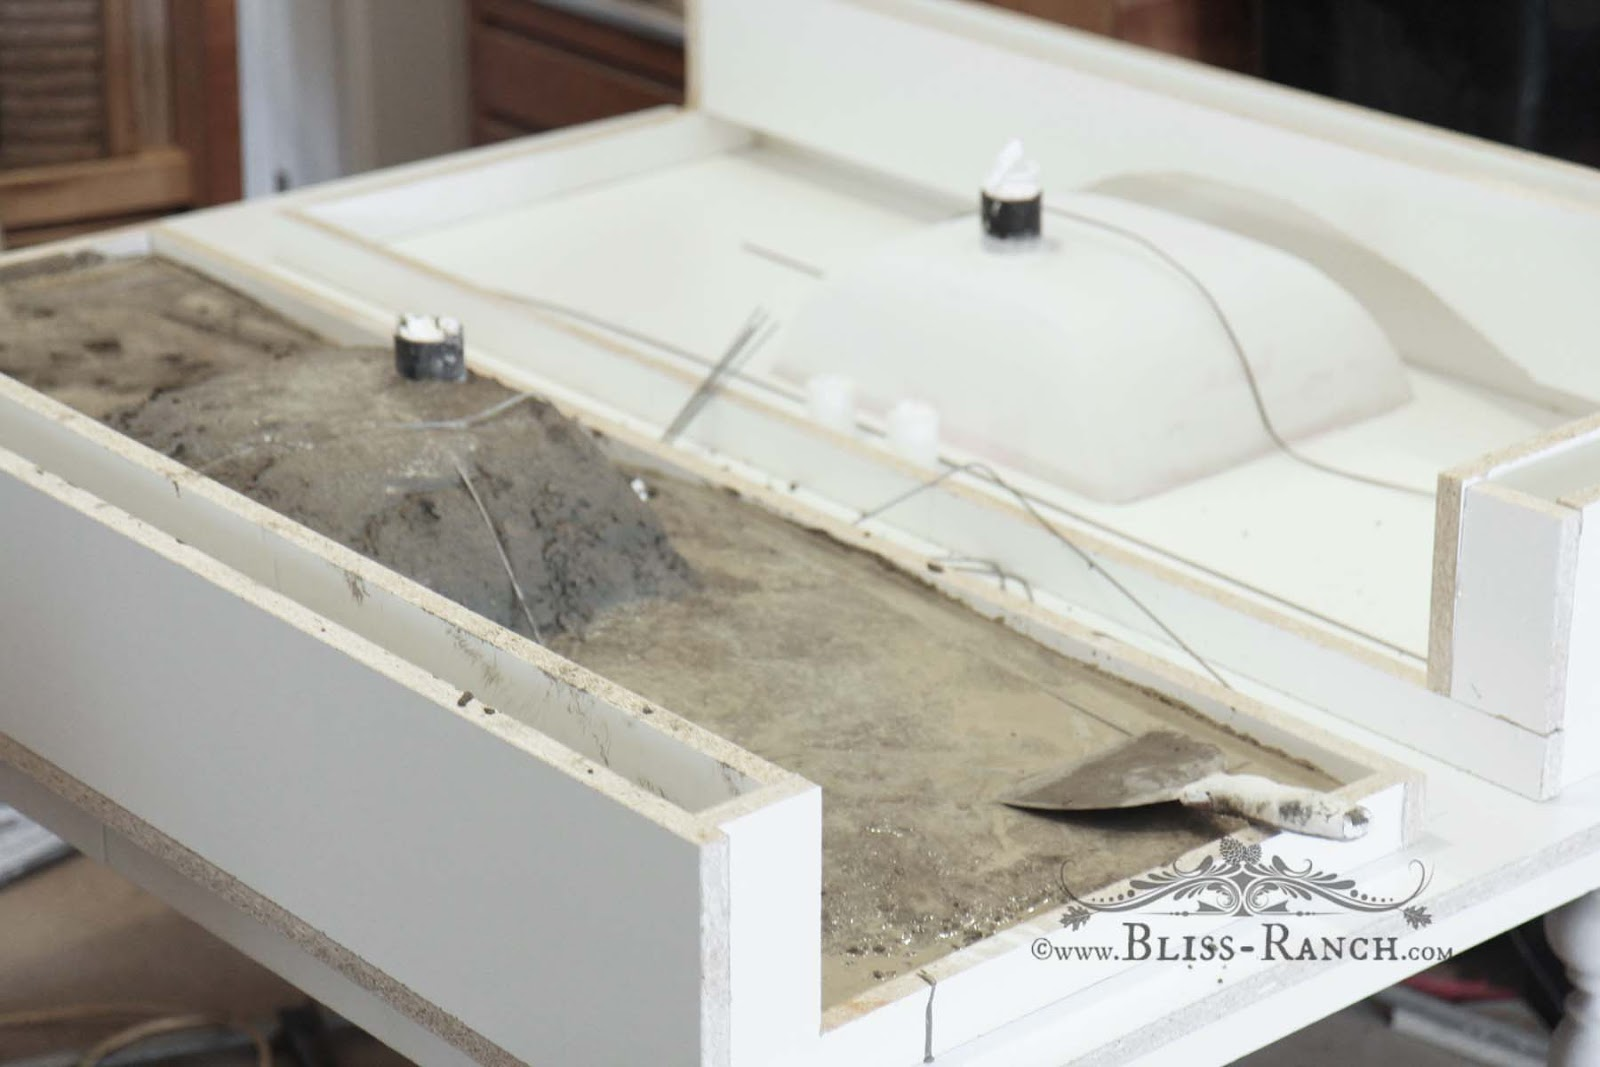 Bliss Ranch Poured Concrete Bathroom Vanity Top